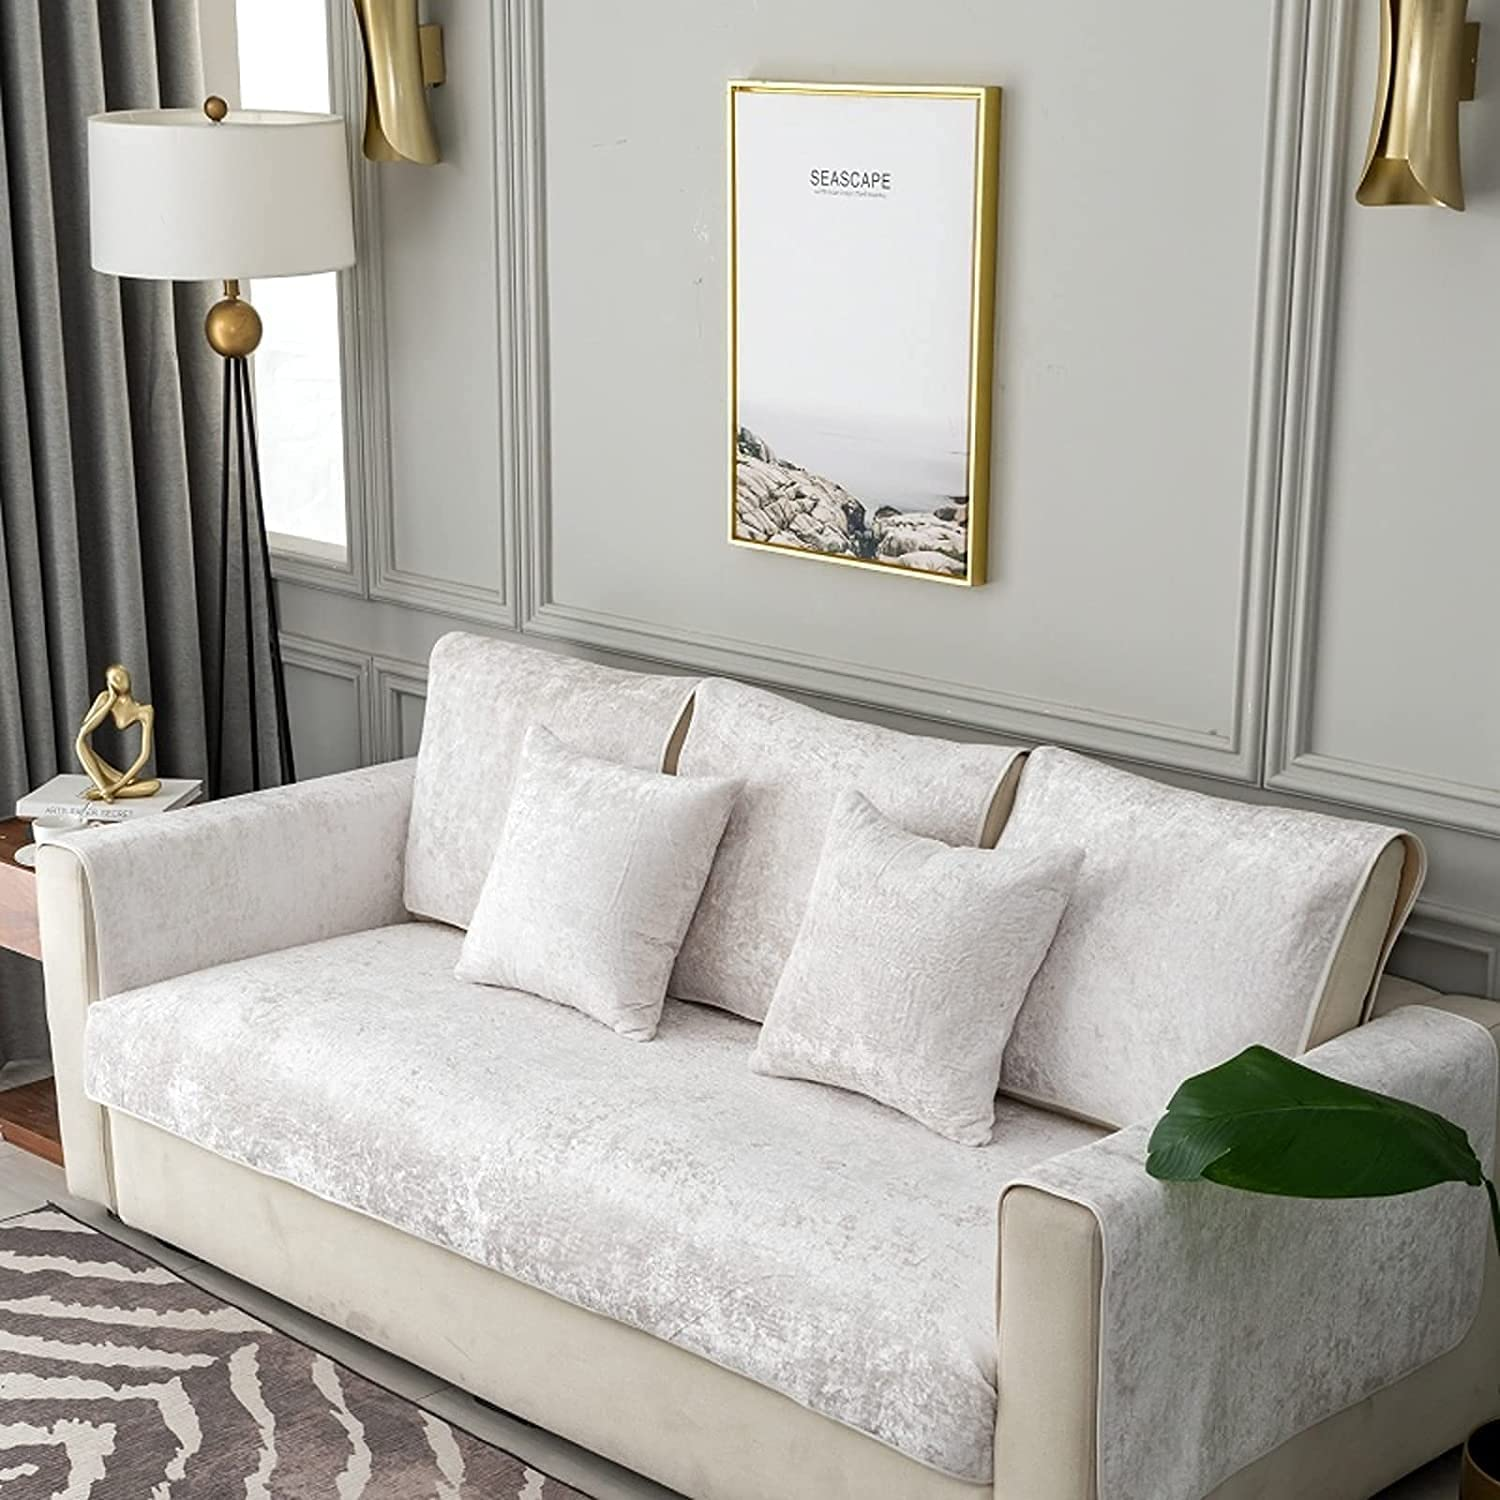 Charlotte Mall ZYZCJT 100% Waterproof Jacquard Max 49% OFF Suede Slipcover Sofa